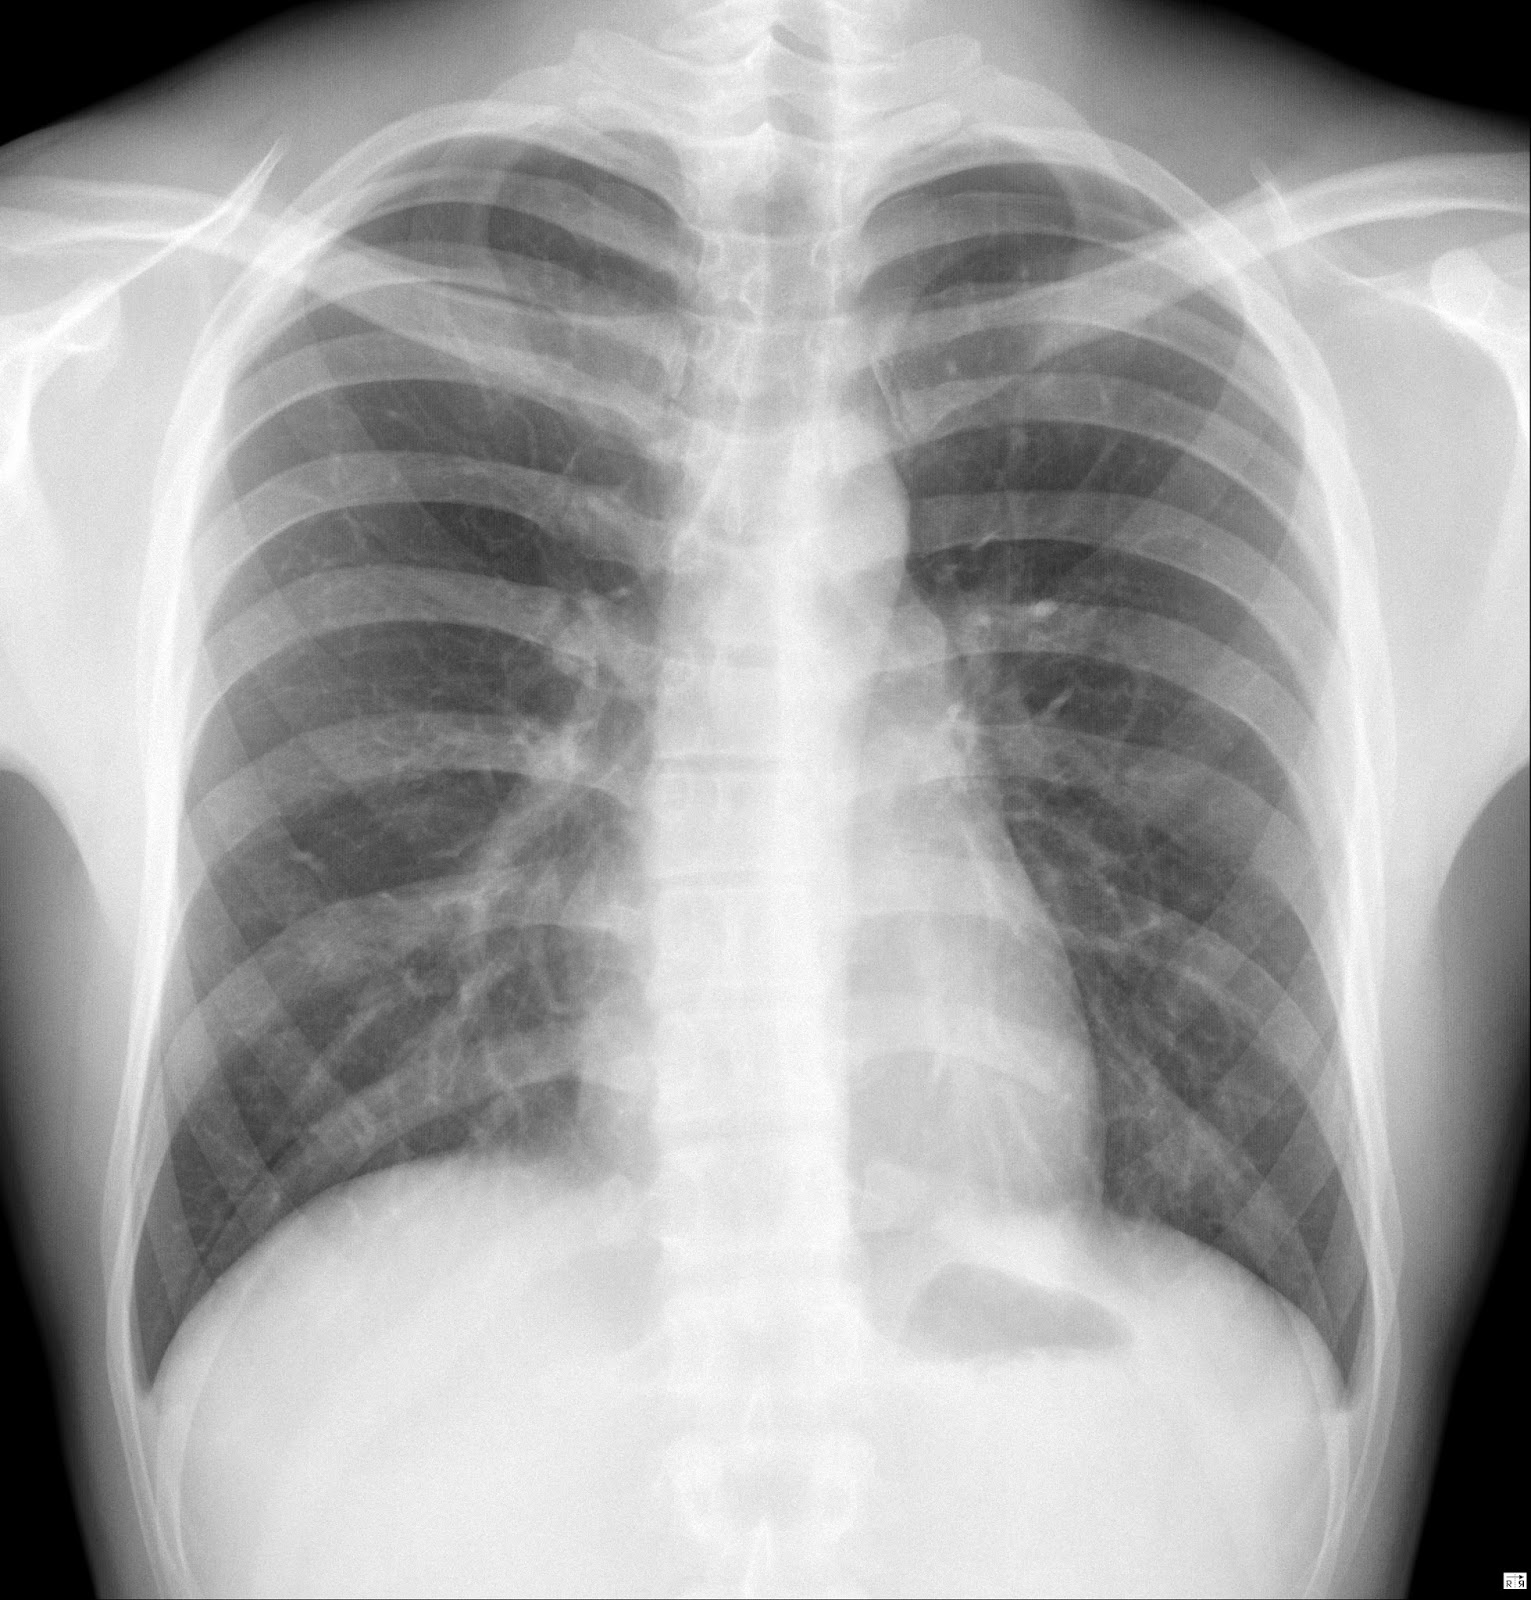 chest radiology About the american college of chest physicians the american college of chest physicians is the global leader in advancing best patient outcomes through innovative chest medicine education, clinical research, and team-based care.